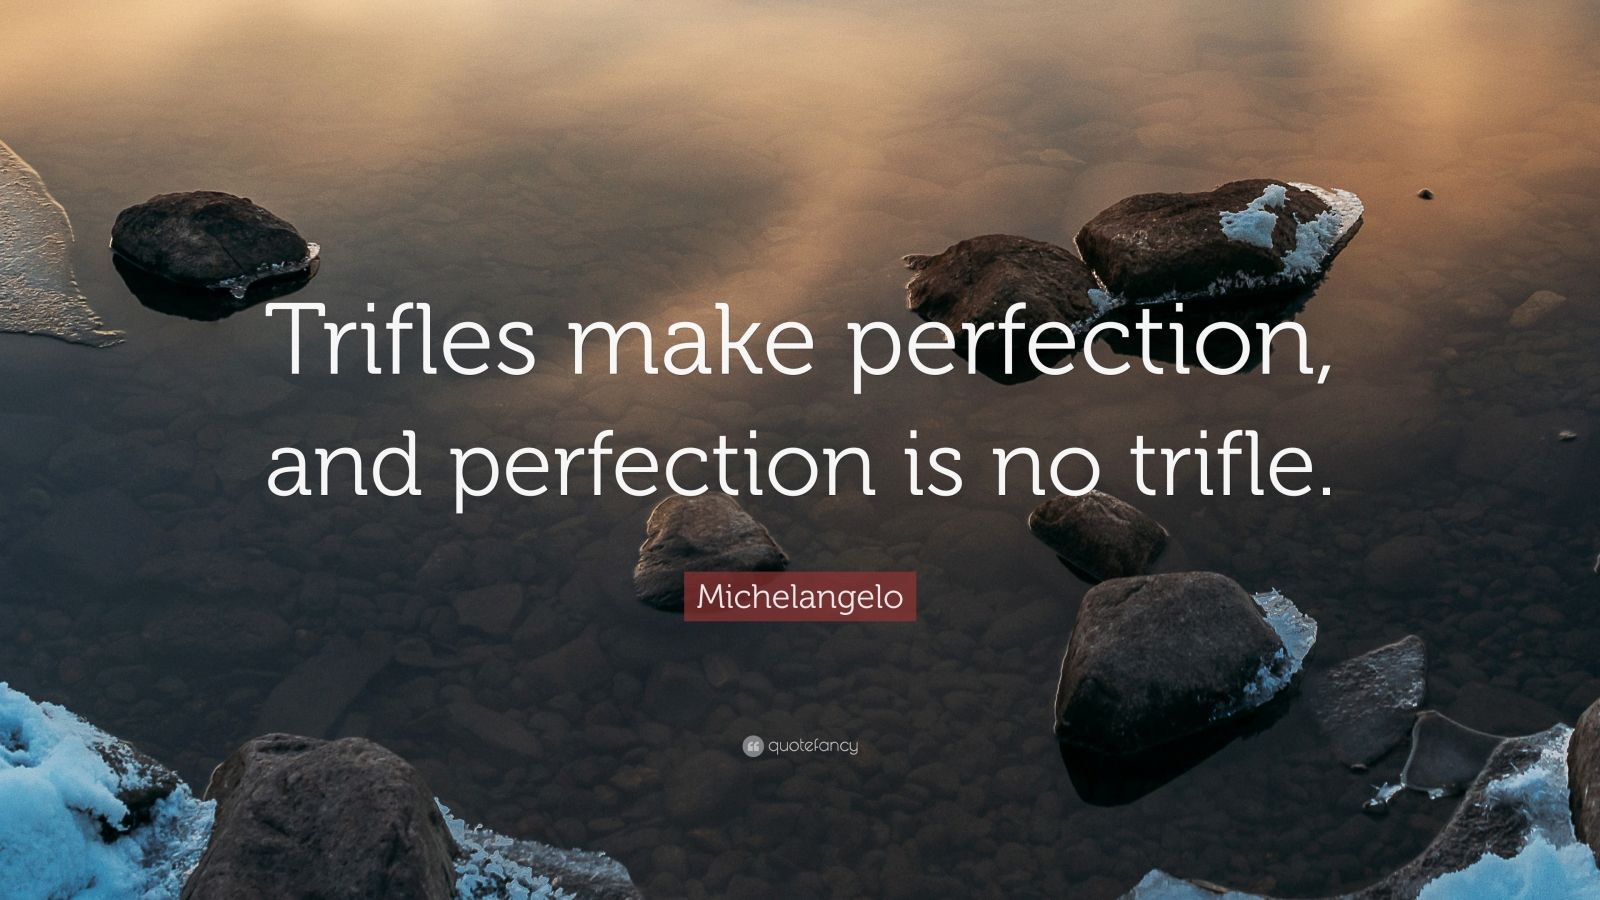 an analysis of trifles make perfections and perfection is no trifle by michelangelo The quotation was trifles make perfection, and perfection is no trifle the quotation is from michelangelo, the great italian sculptor the assignment of such a quotation was surely meant to make a strong impression on a young mind.